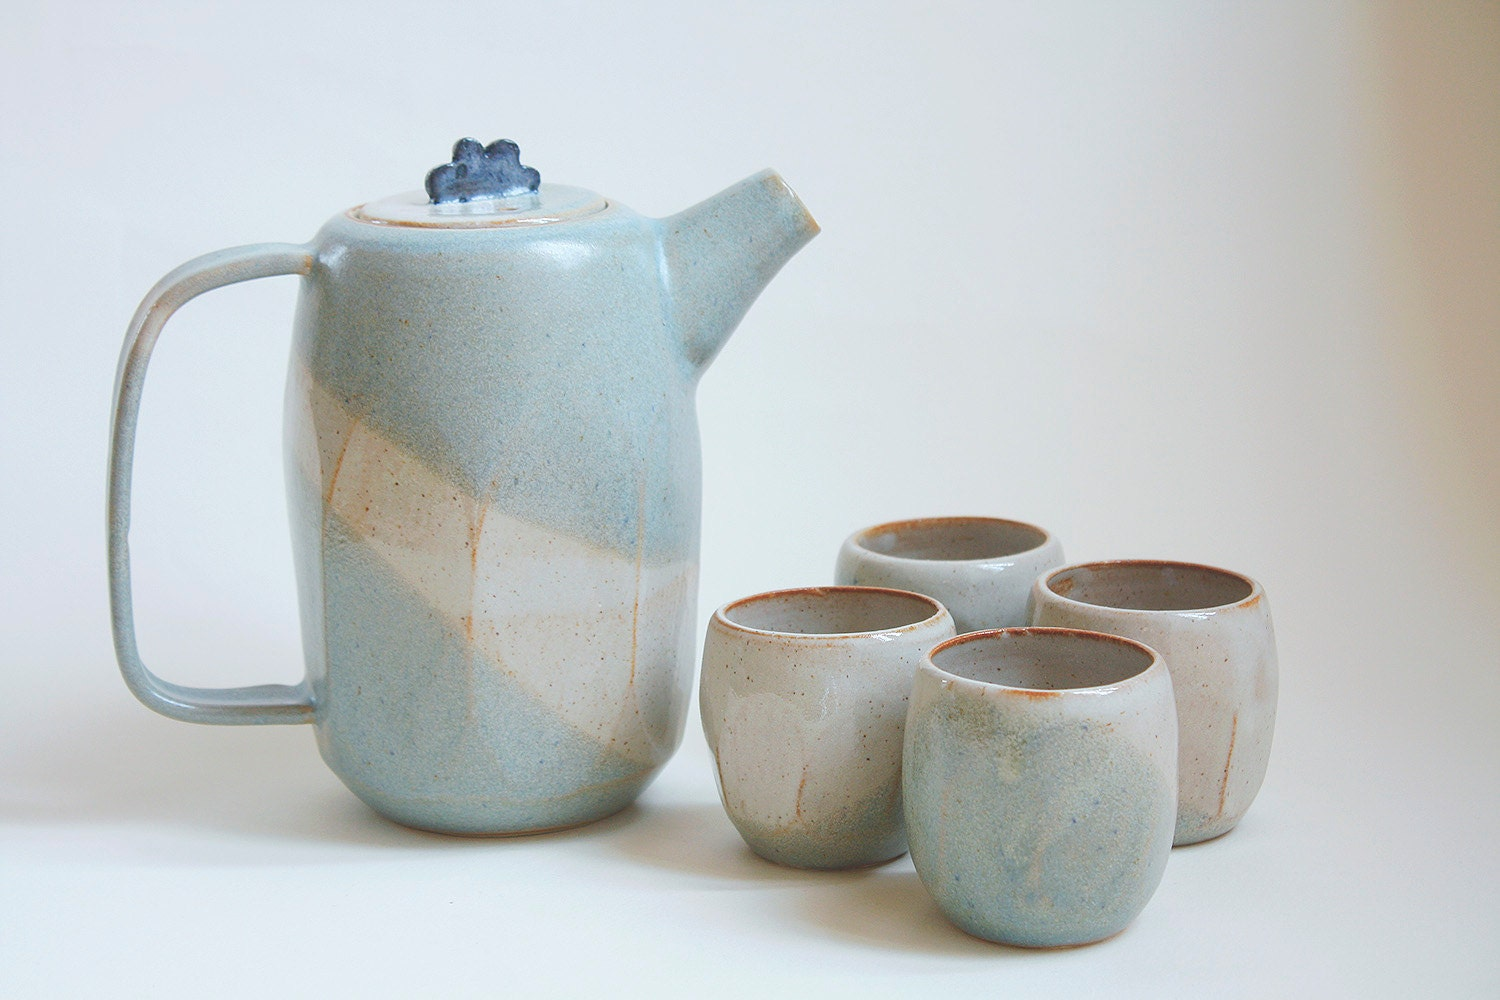 Tea Set Faceted Ceramic Blue And White Tea Pot And Four Cups